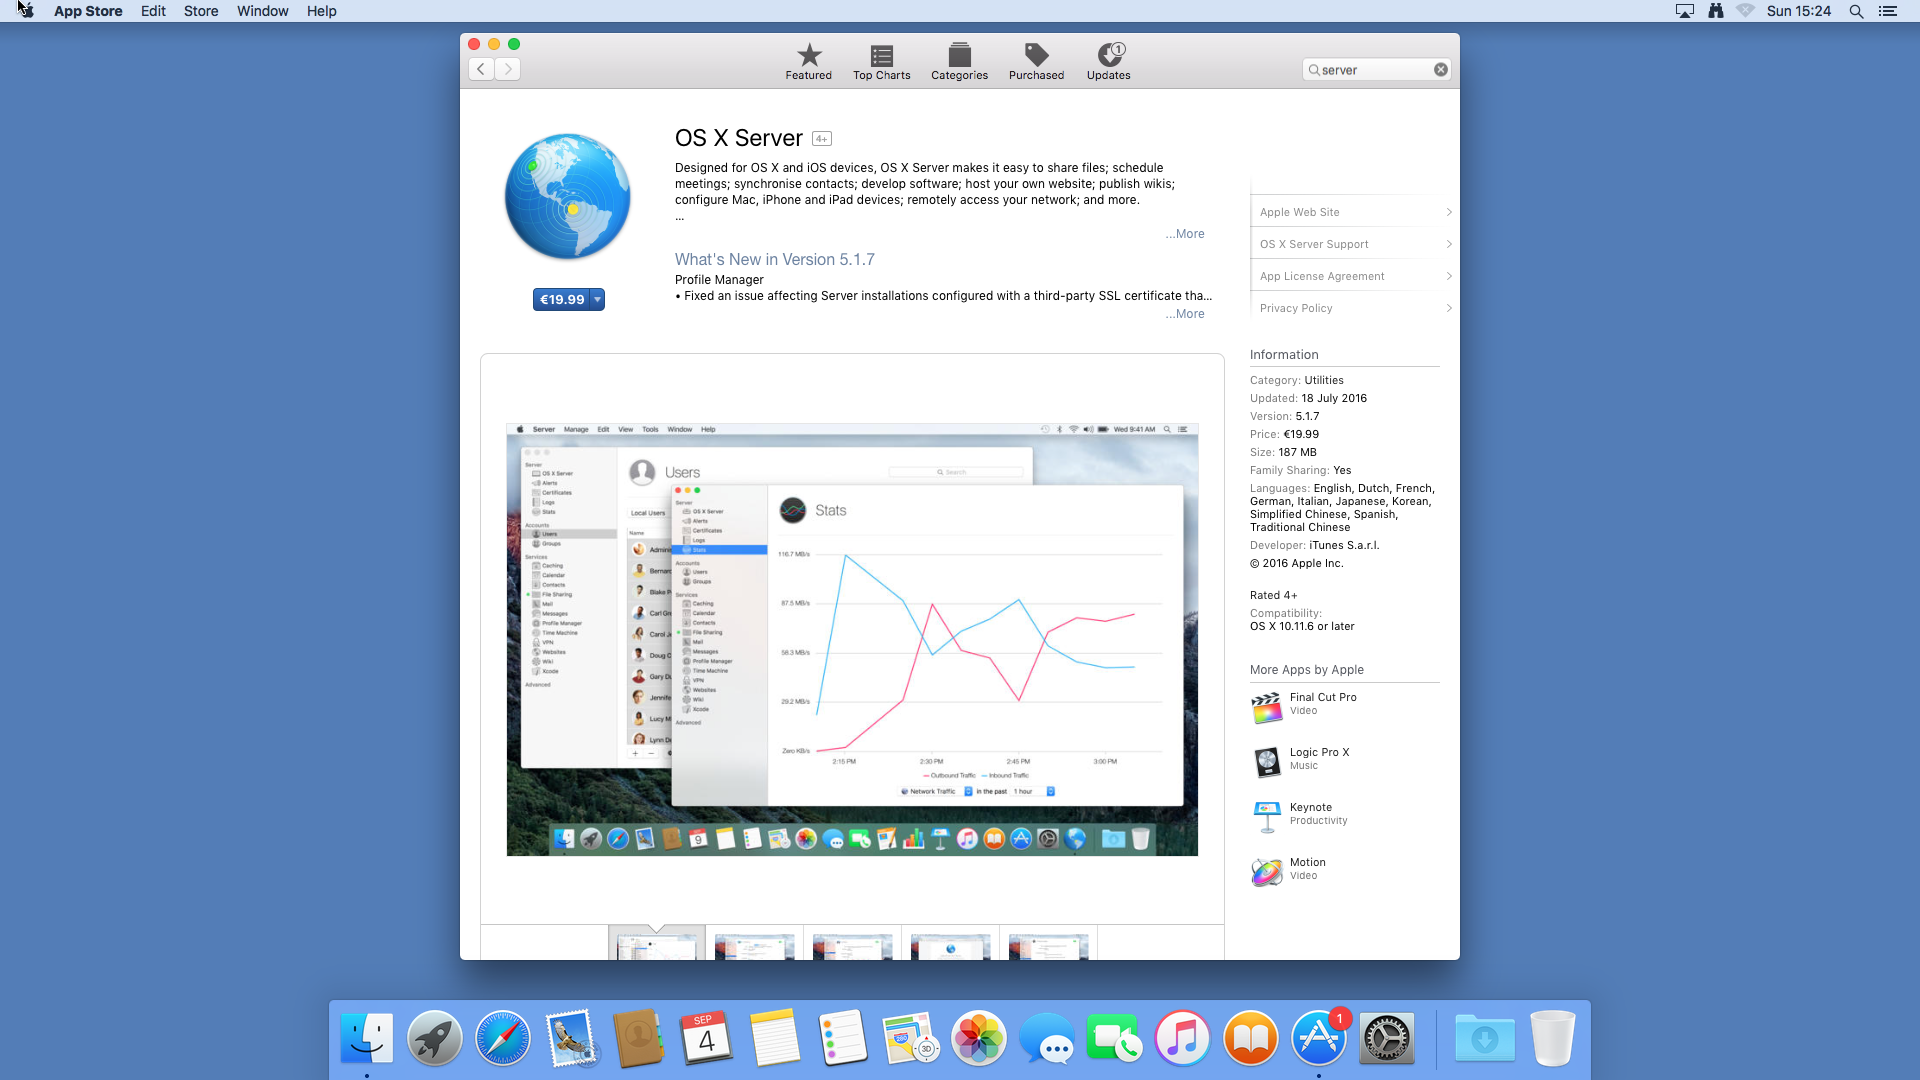 Managing your mobile devices in the cloud using Apple's own